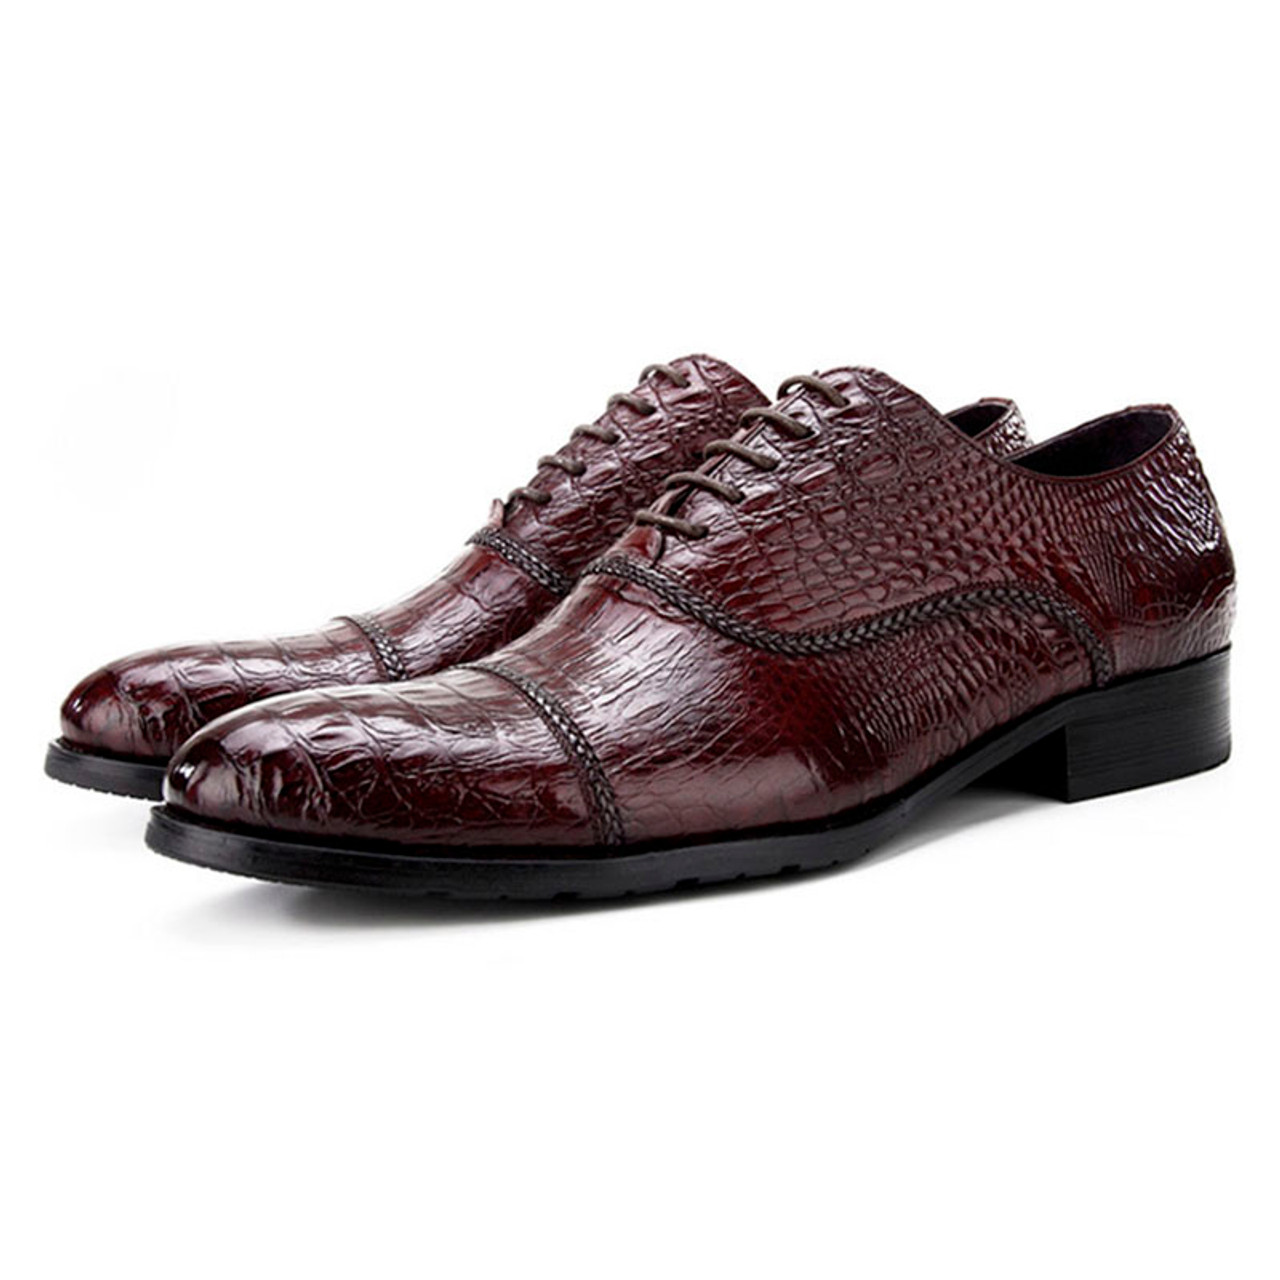 1297521e89f GRIMENTIN Cool Mens Oxford Shoes, Genuine Leather, Brown Red